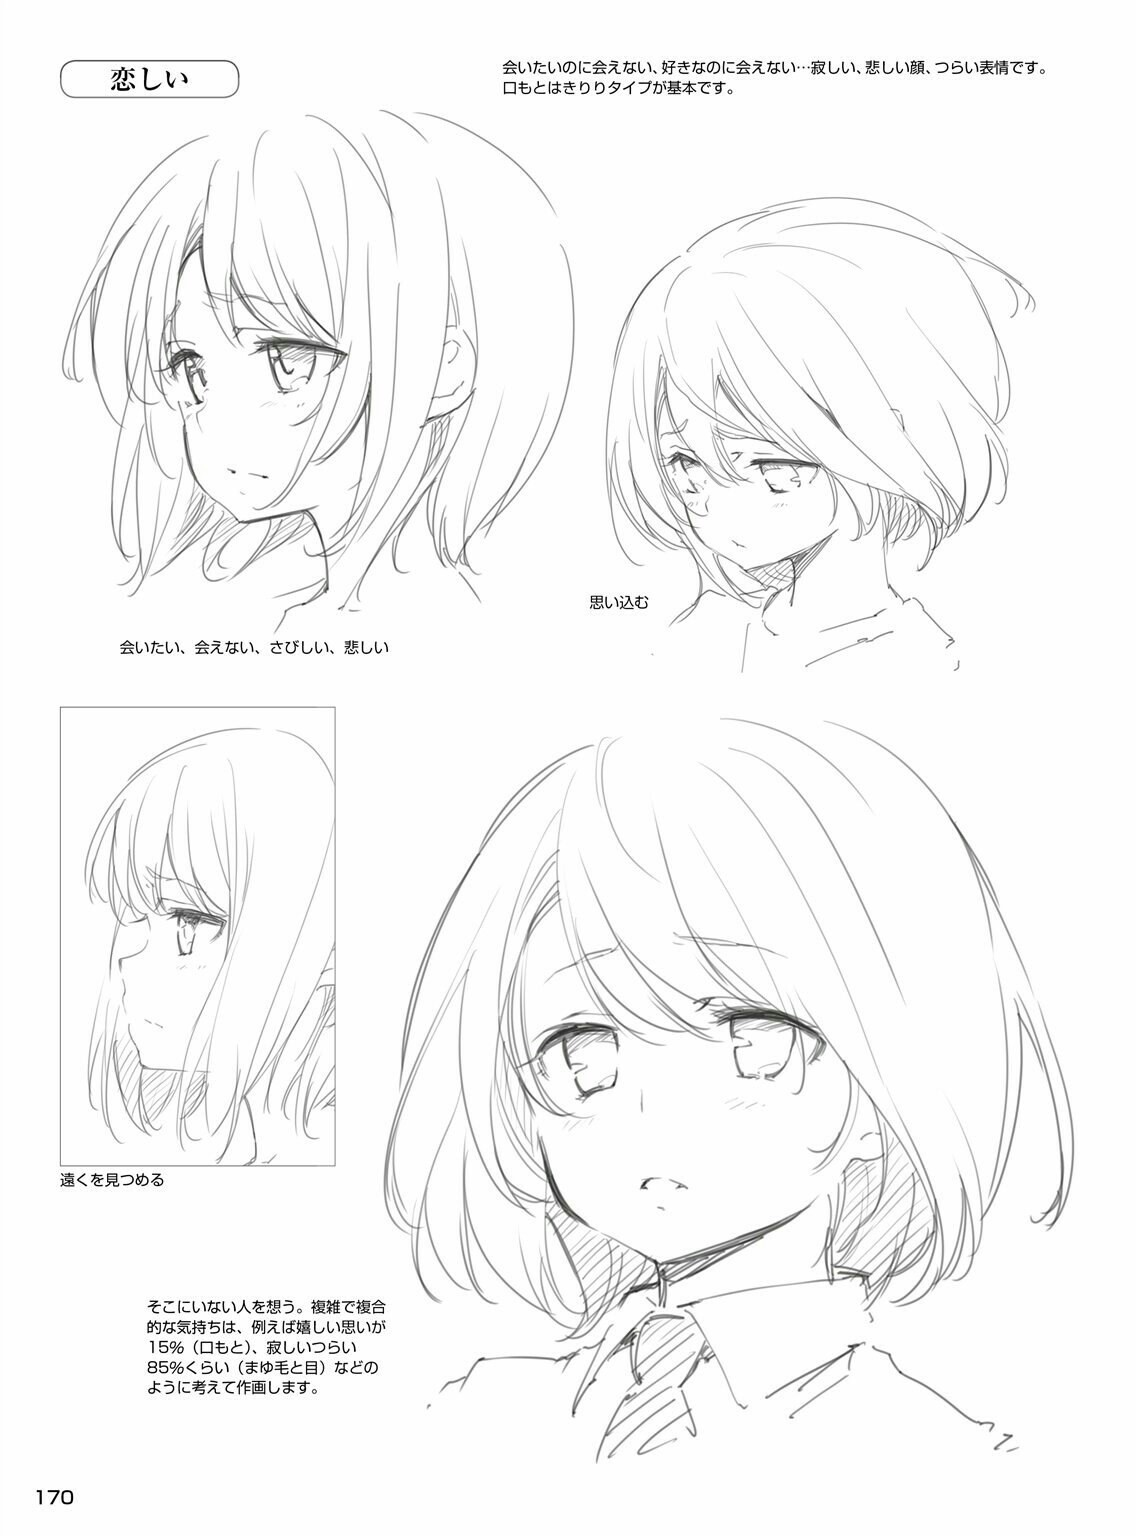 Face Expressions Drawing at GetDrawings.com | Free for ...